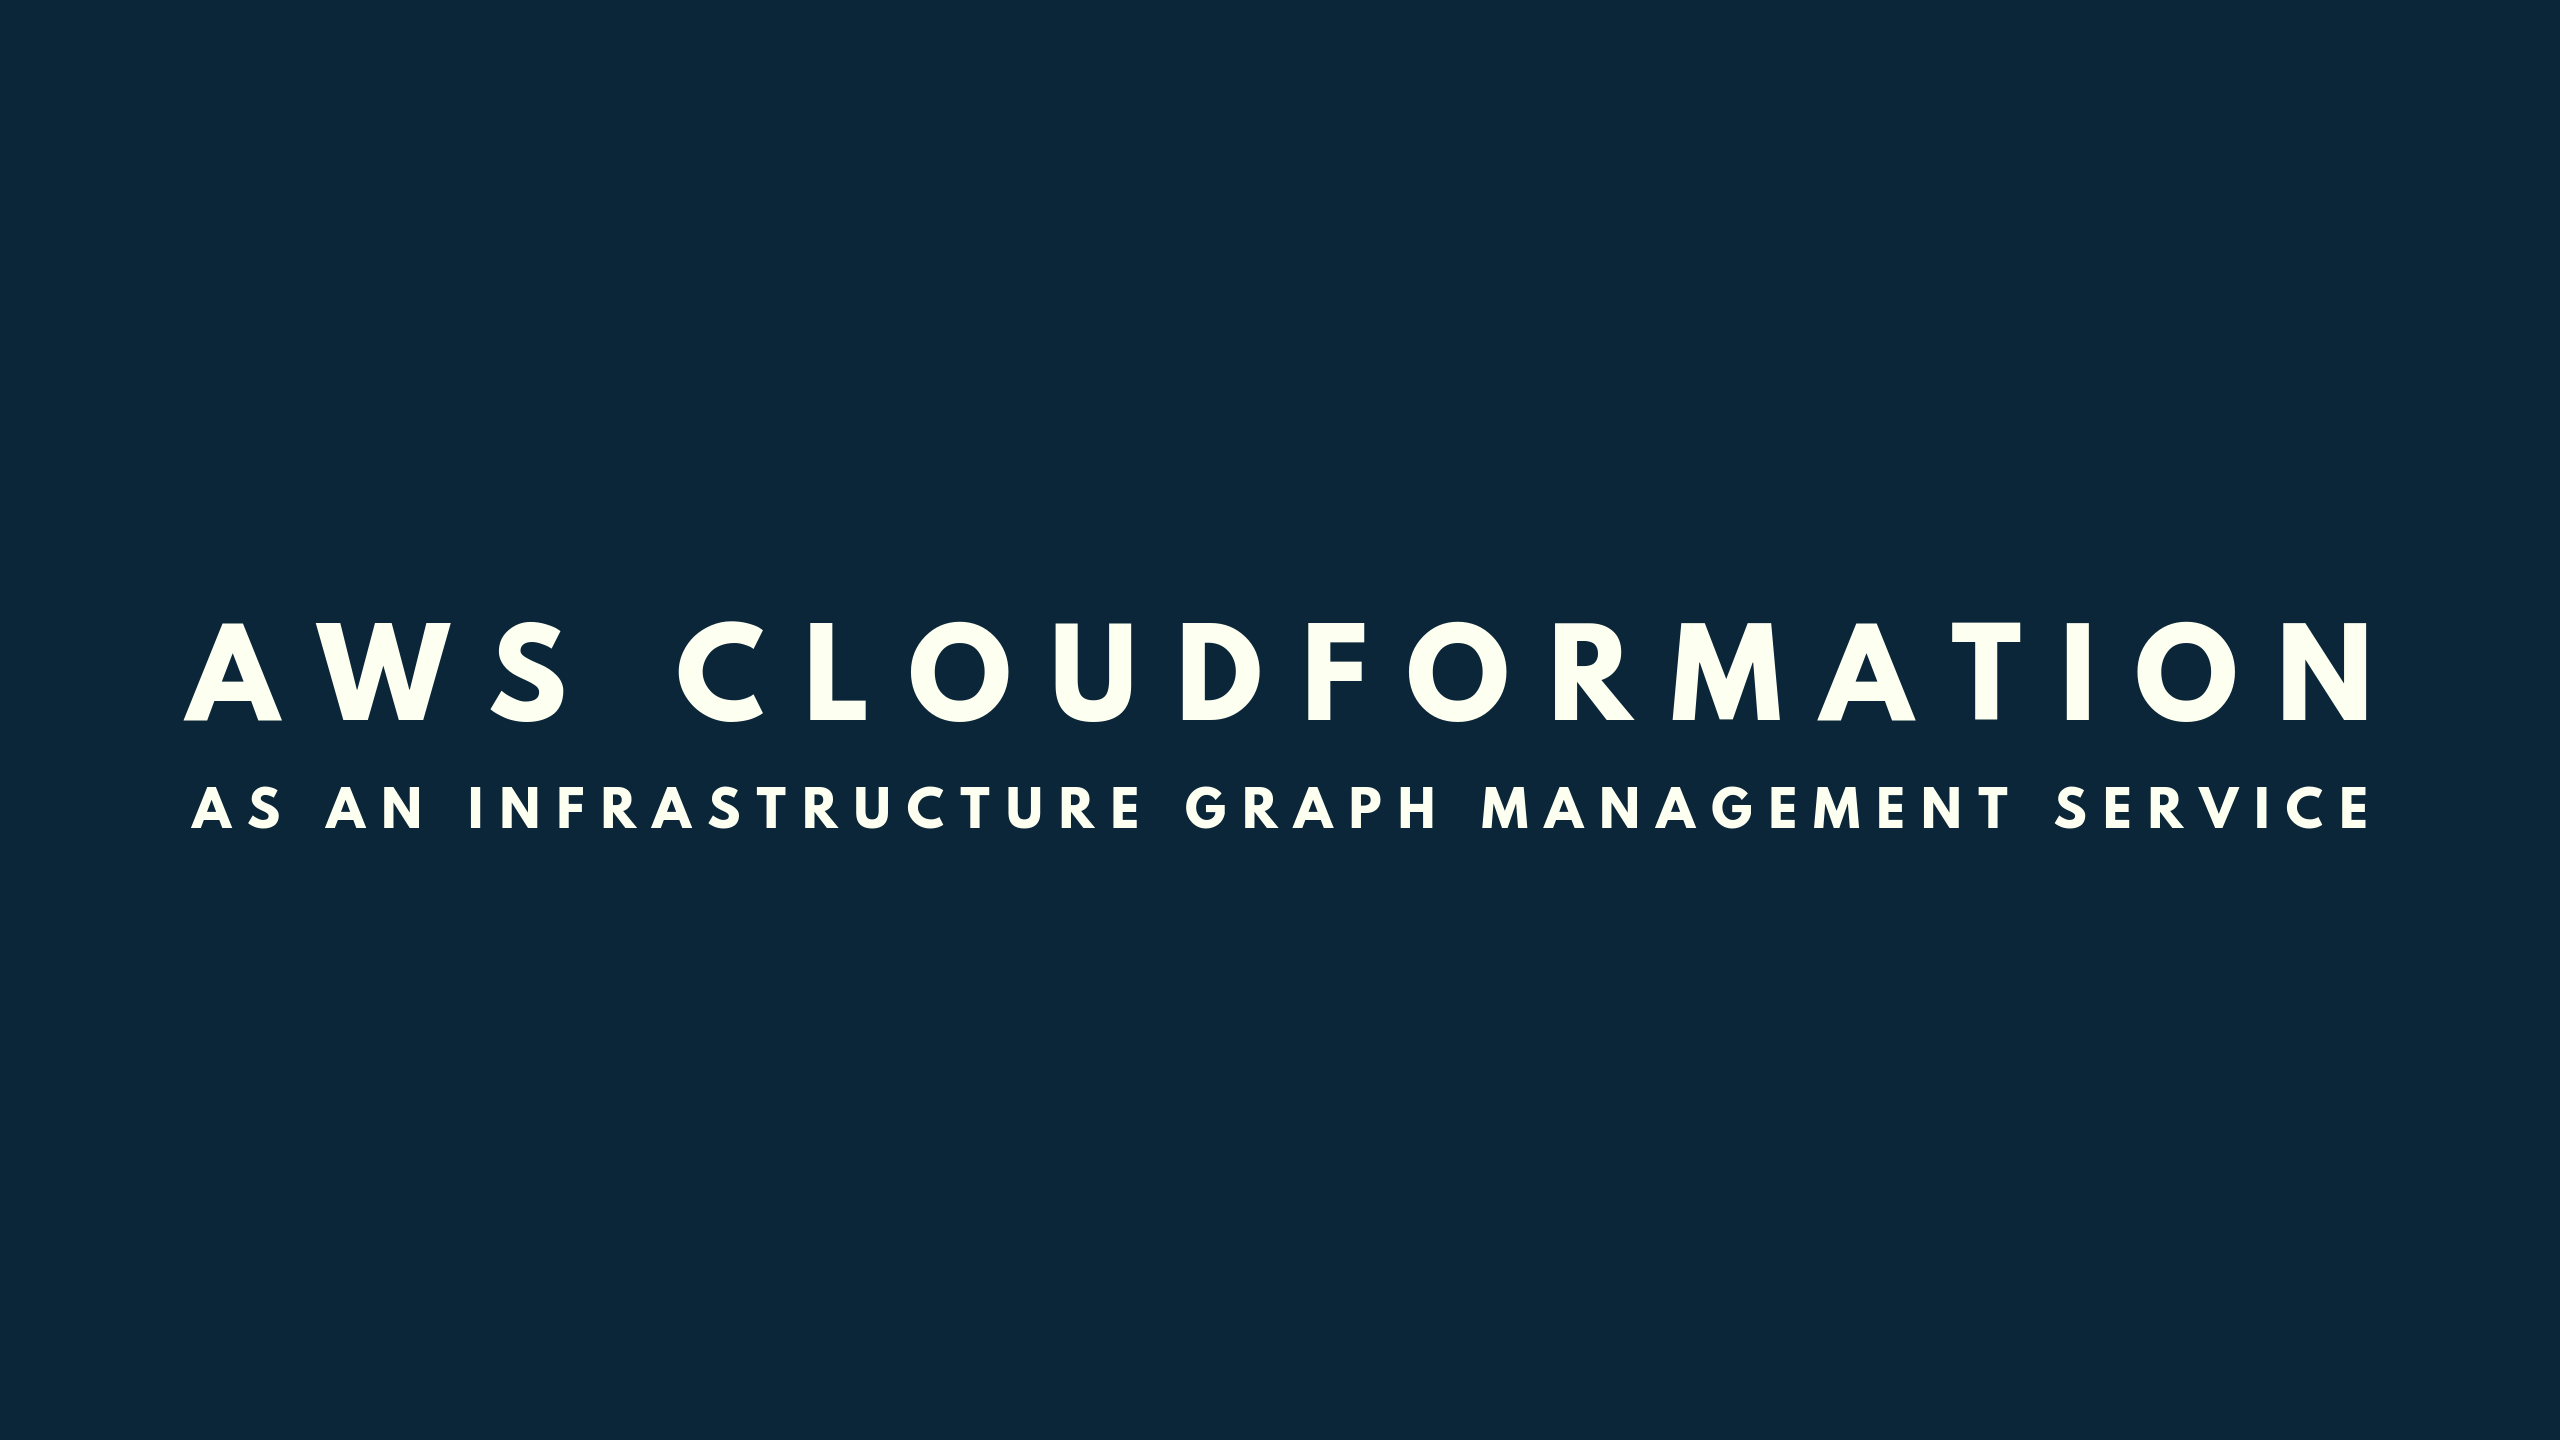 AWS CloudFormation is an infrastructure graph management